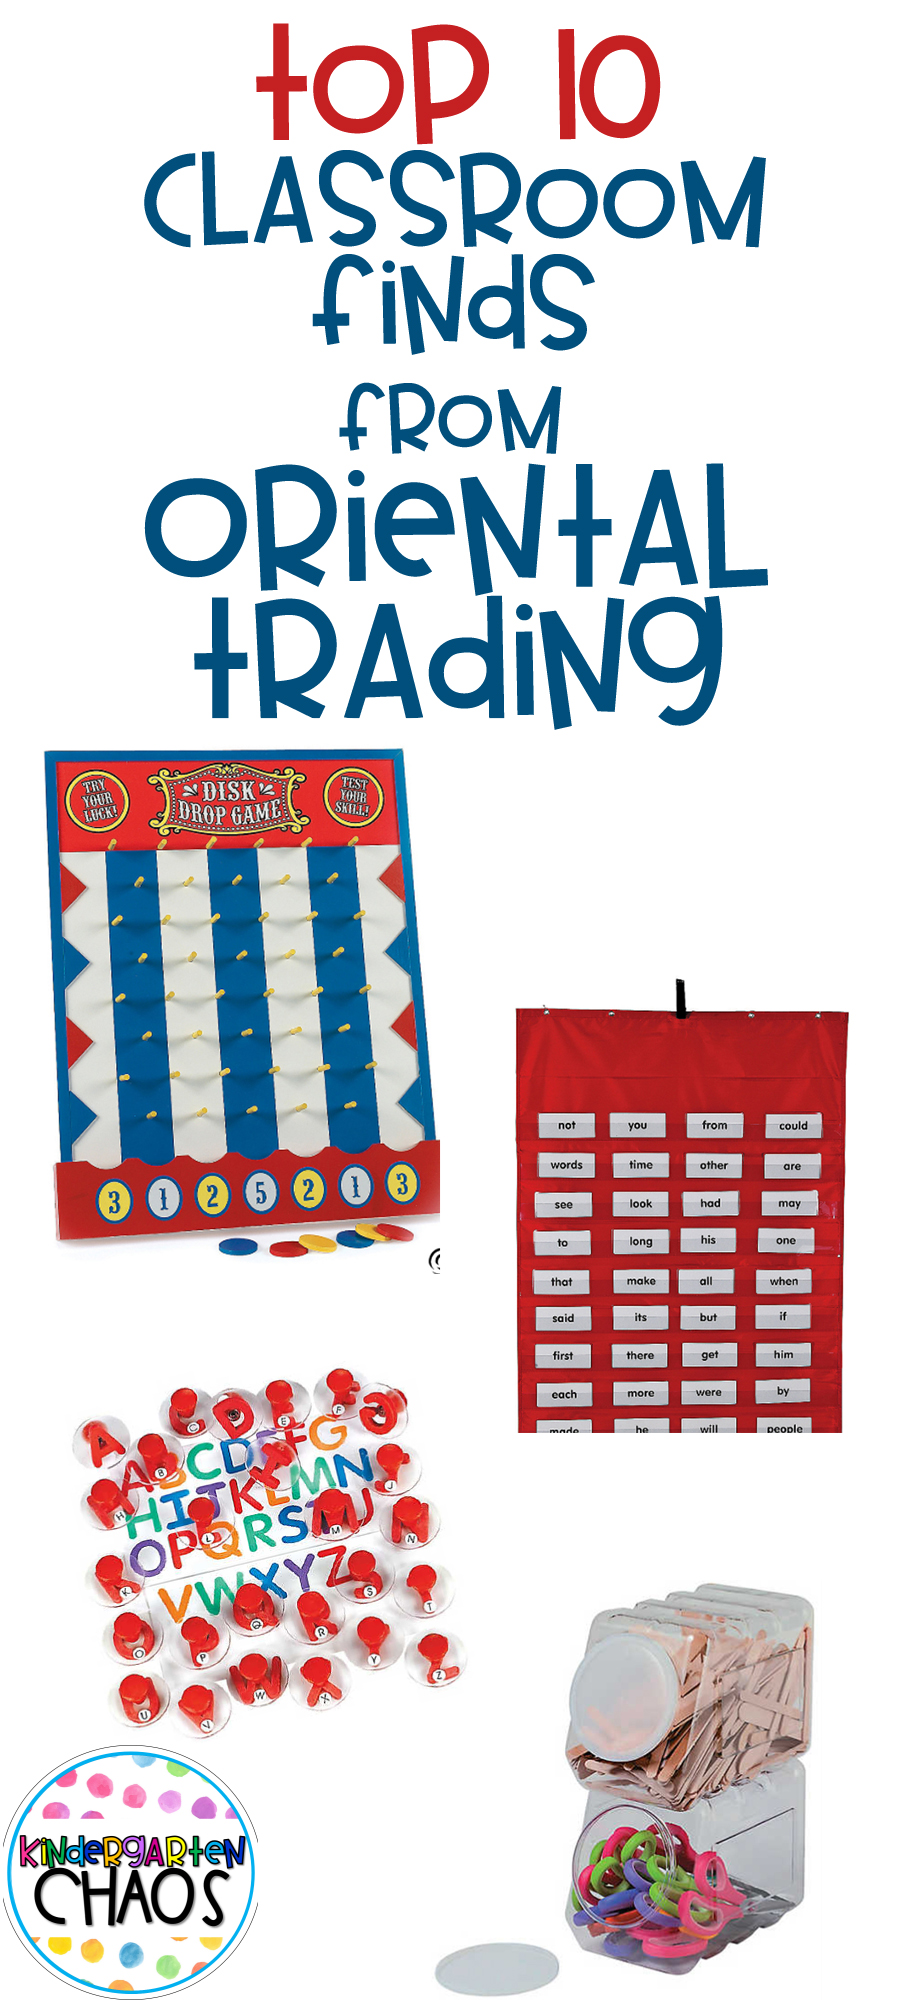 My Top 10 Classroom Finds From Oriental Trading